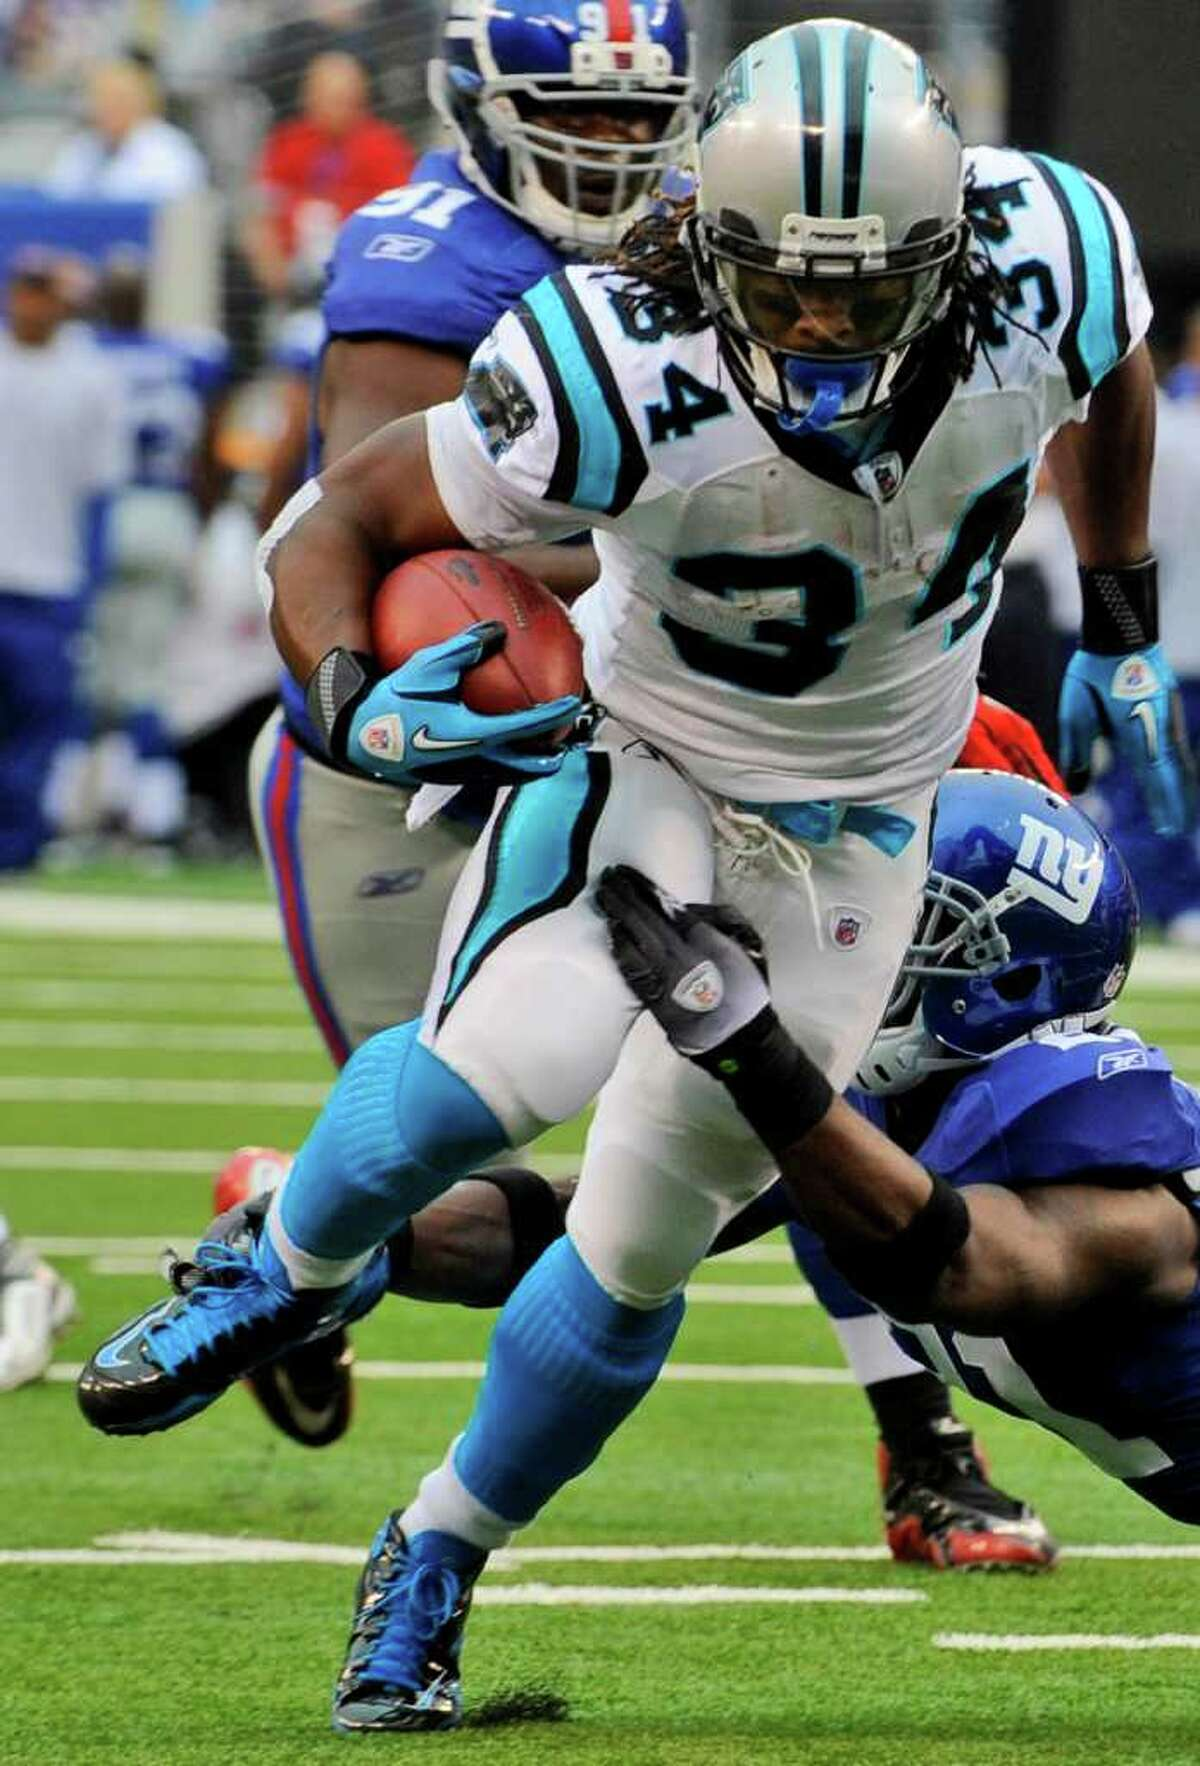 Carolina Panthers running back DeAngelo Williams (34) breaks a tackle attempt by New York Giants' Kenny Phillips during the first quarter of an NFL football game at New Meadowlands Stadium in East Rutherford, N.J., Sunday, Sept. 12, 2010.